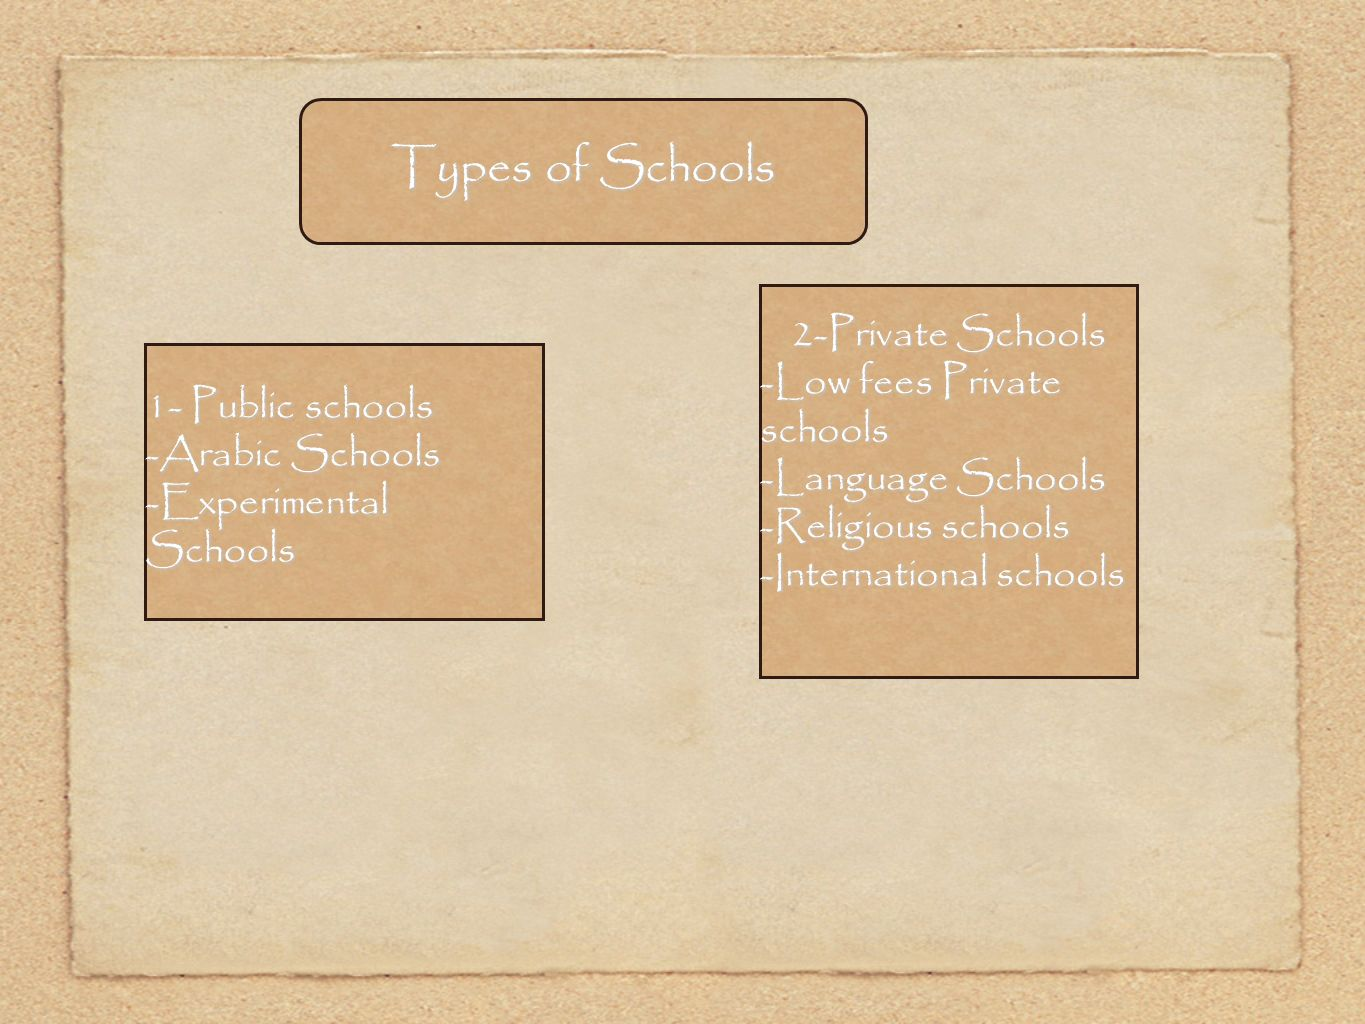 Types of Schools 1- Public schools -Arabic Schools -Experimental Schools 2-Private Schools -Low fees Private schools -Language Schools -Religious scho